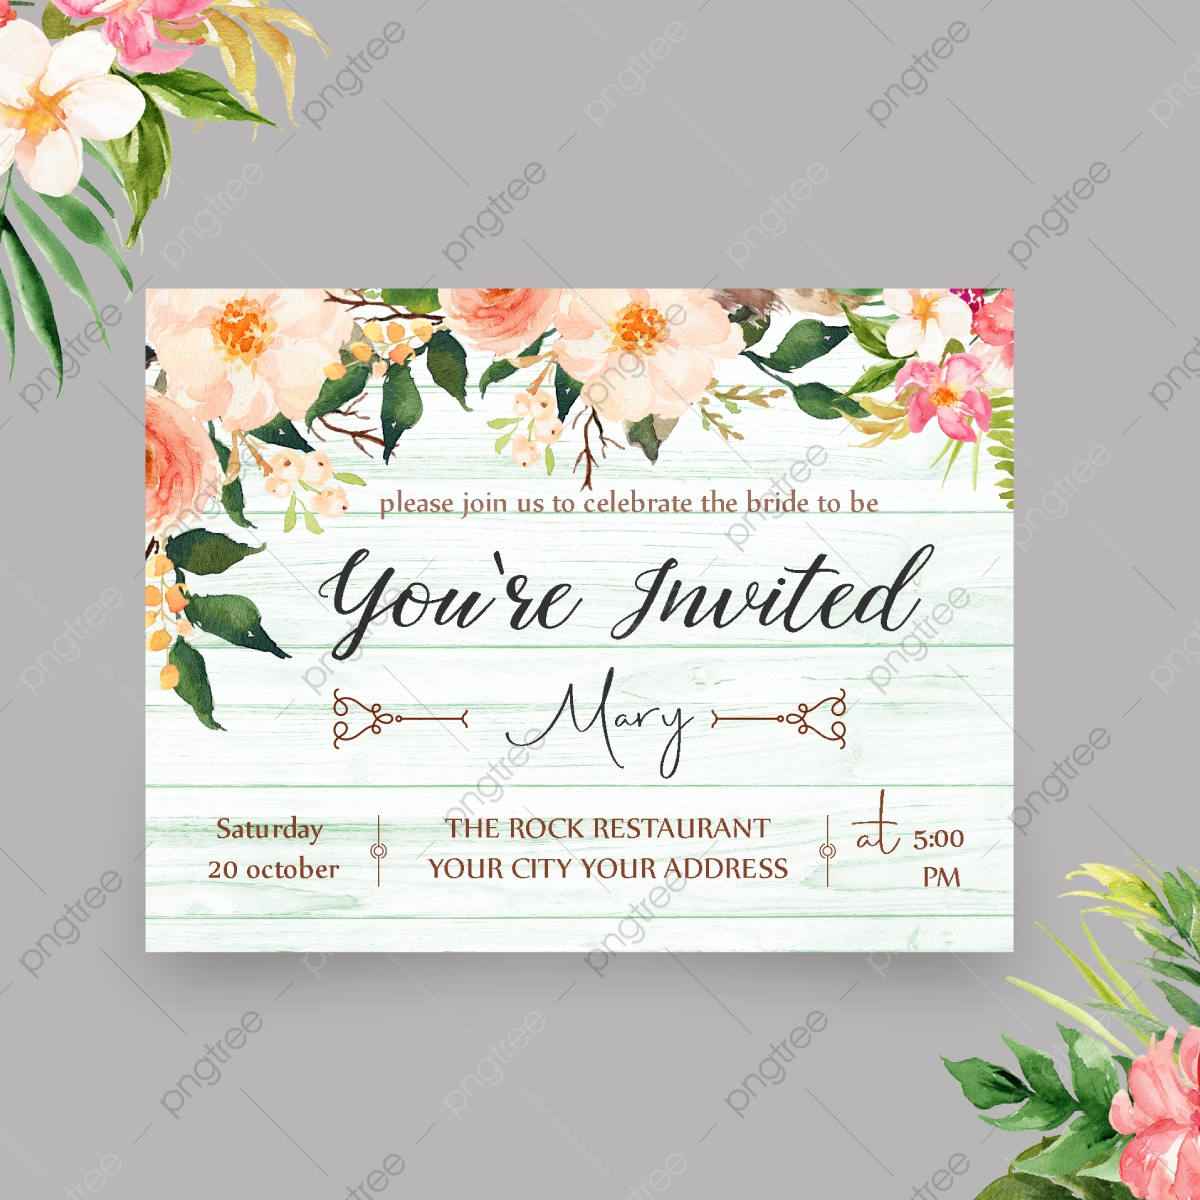 You Are Invited Png Images Vector And Psd Files Free Download On Pngtree